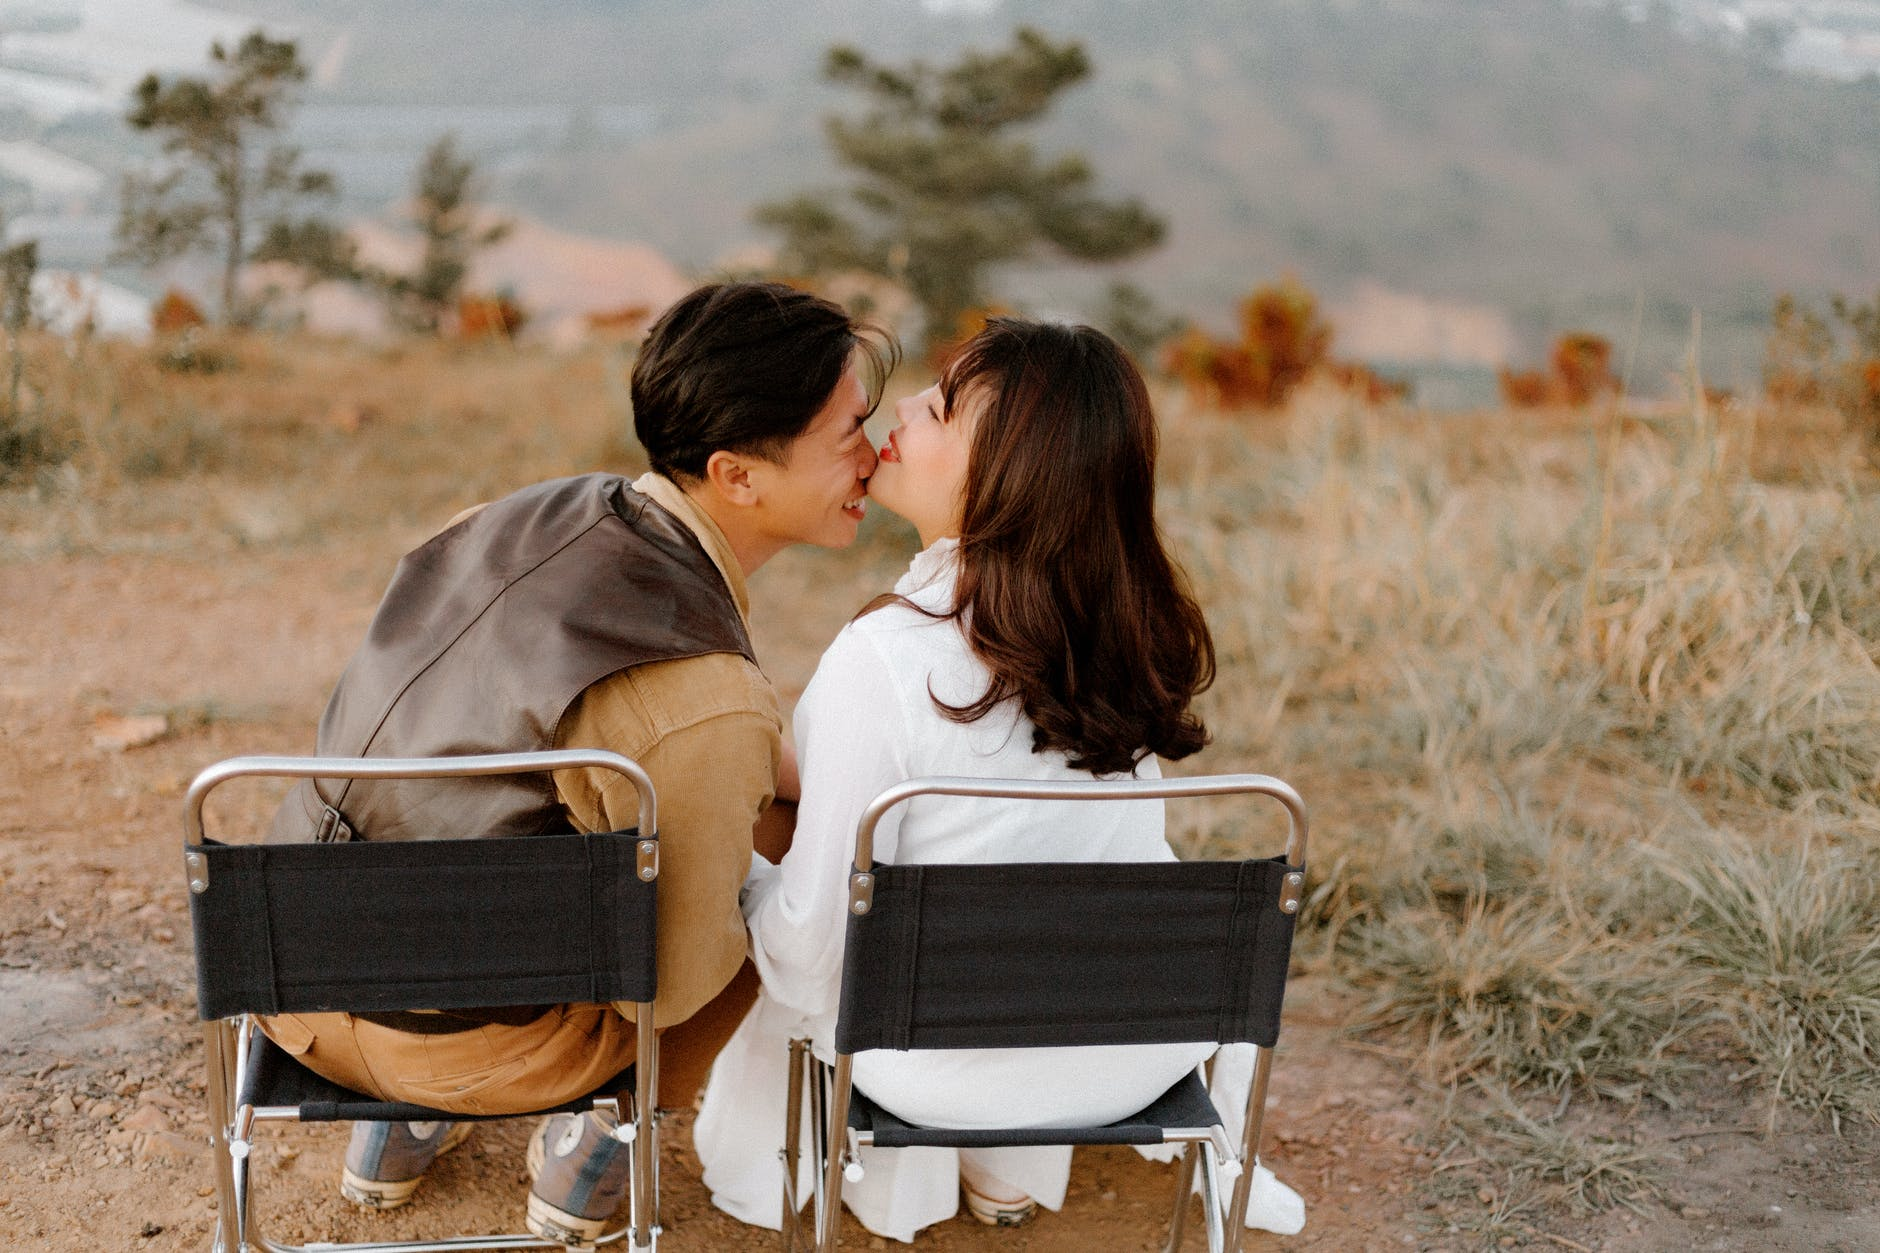 asian wedding couple on chairs in nature